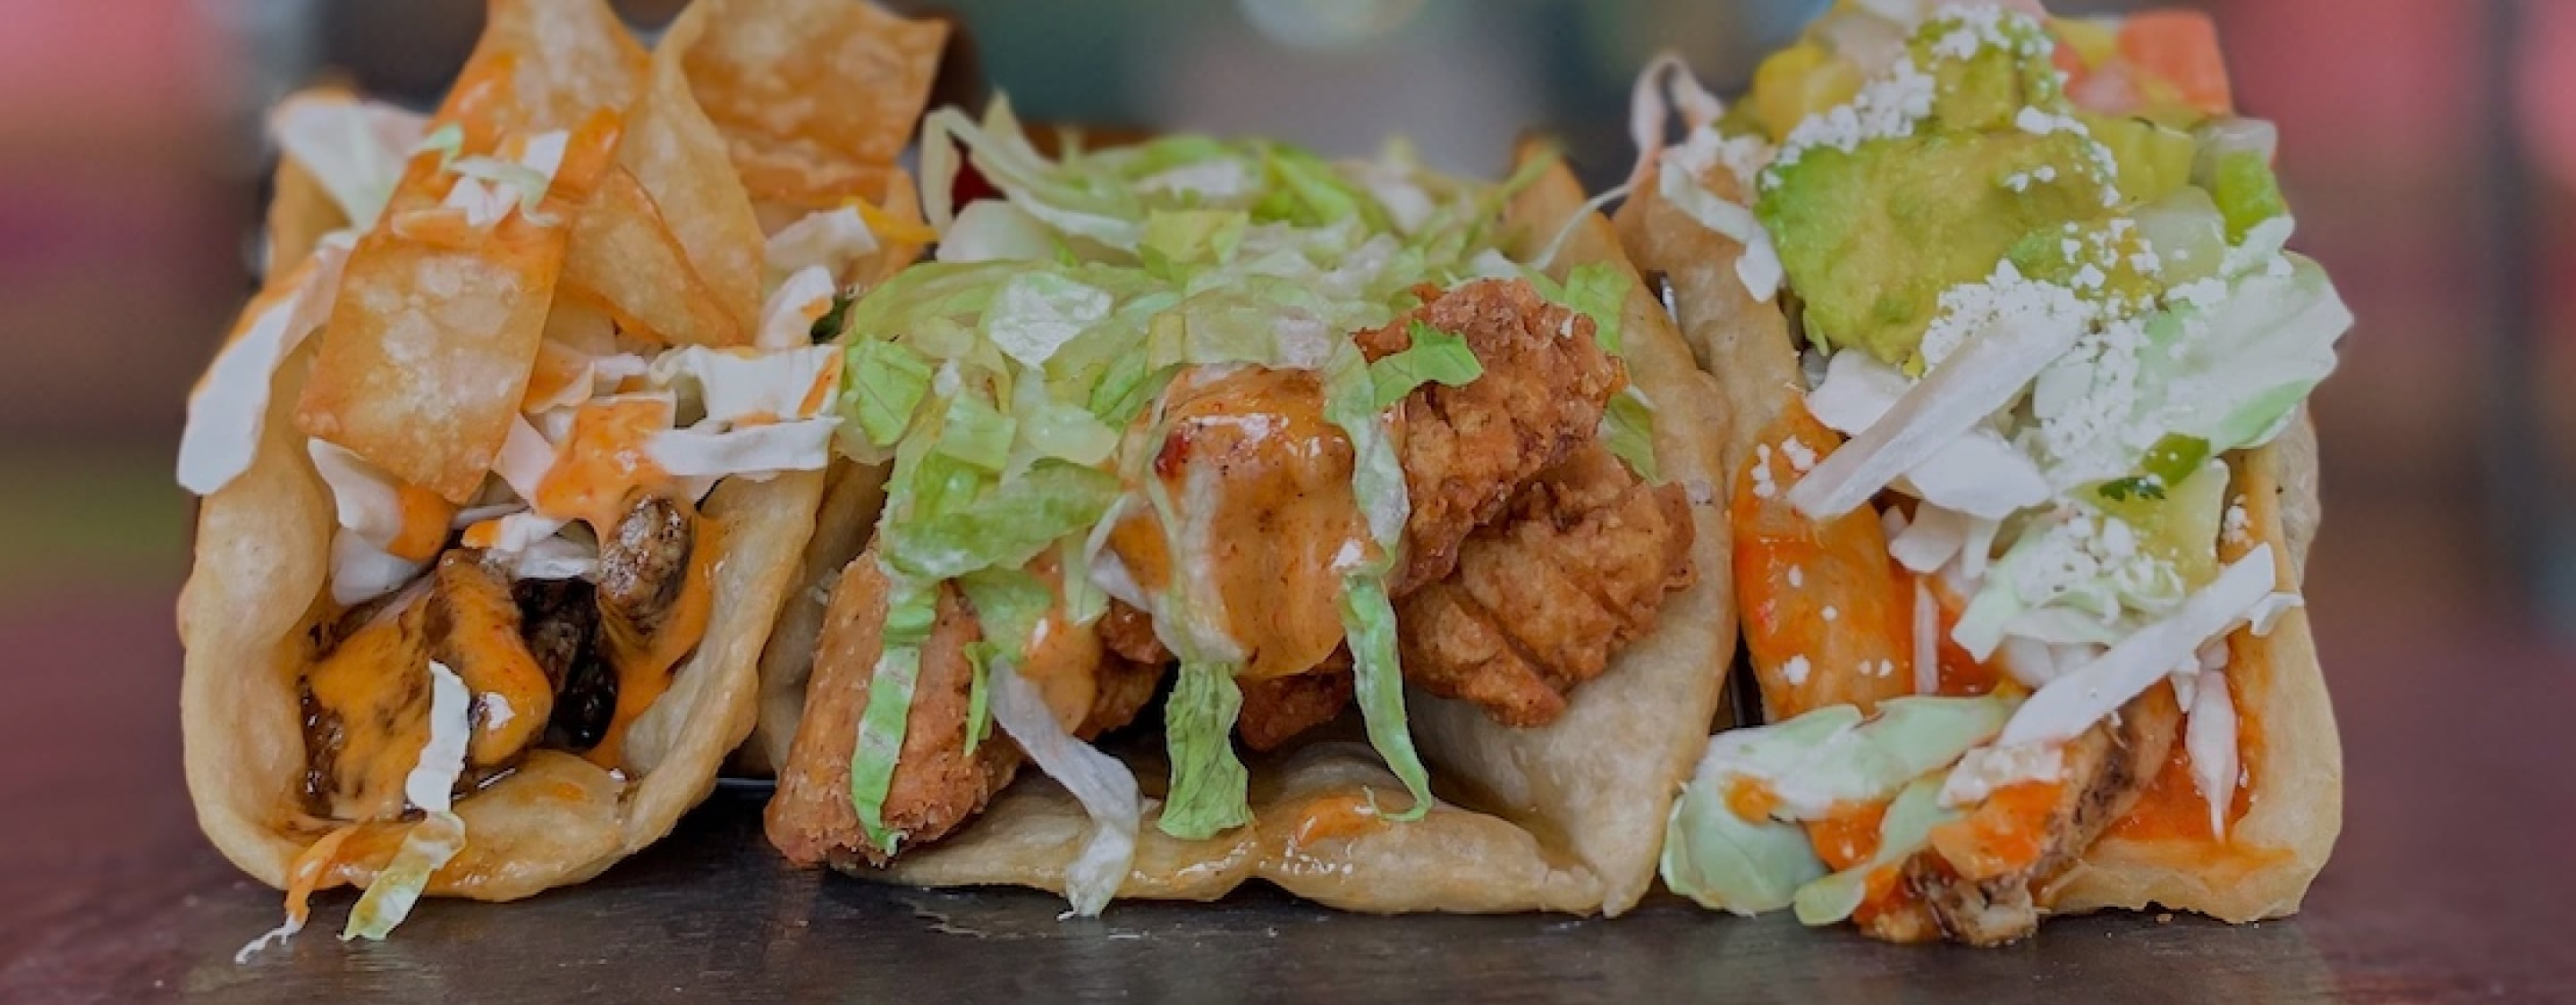 Craft Tacos for a Cause